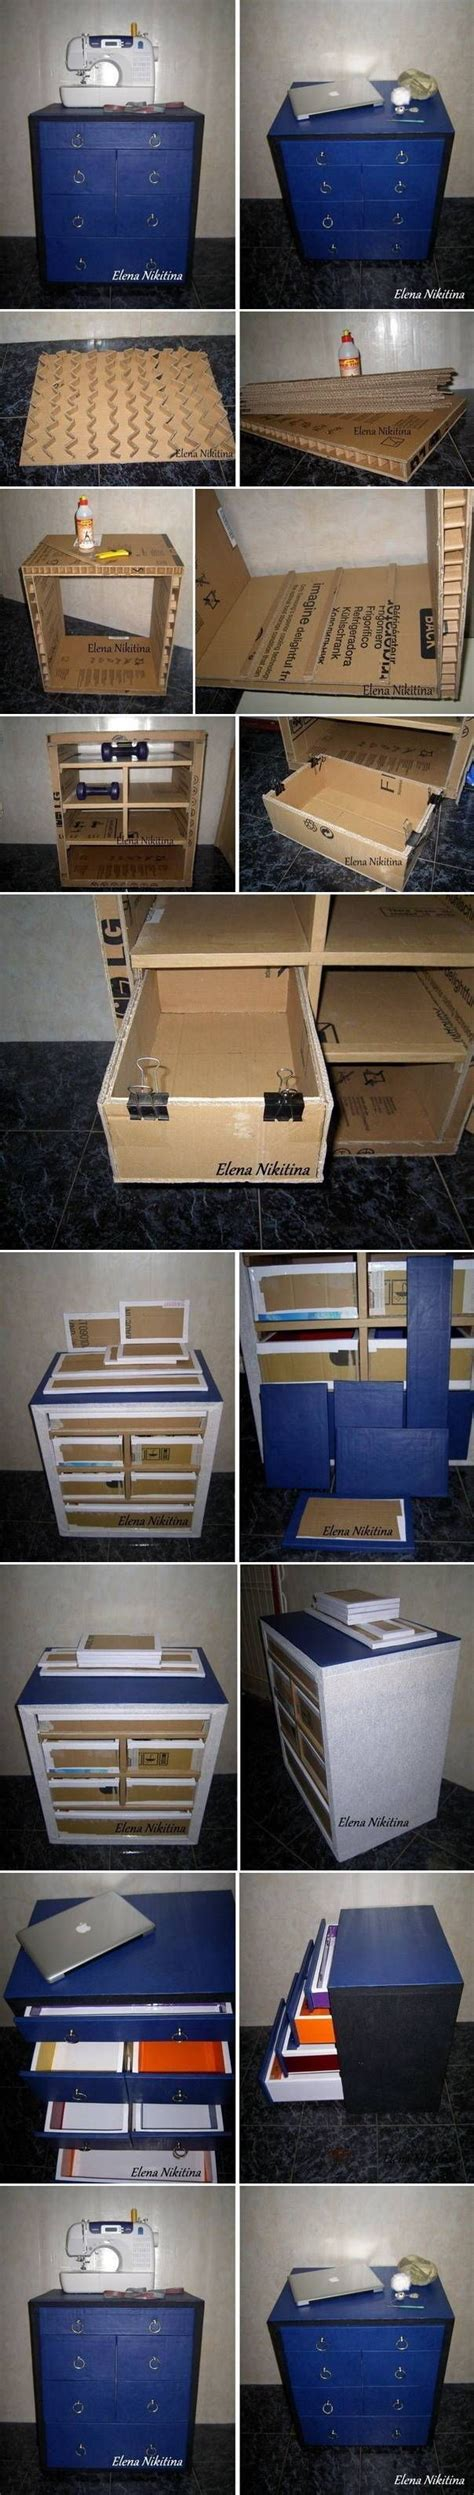 How To Make Cardboard Drawers by Diy Cardboard Chest With Drawers Pictures Photos And